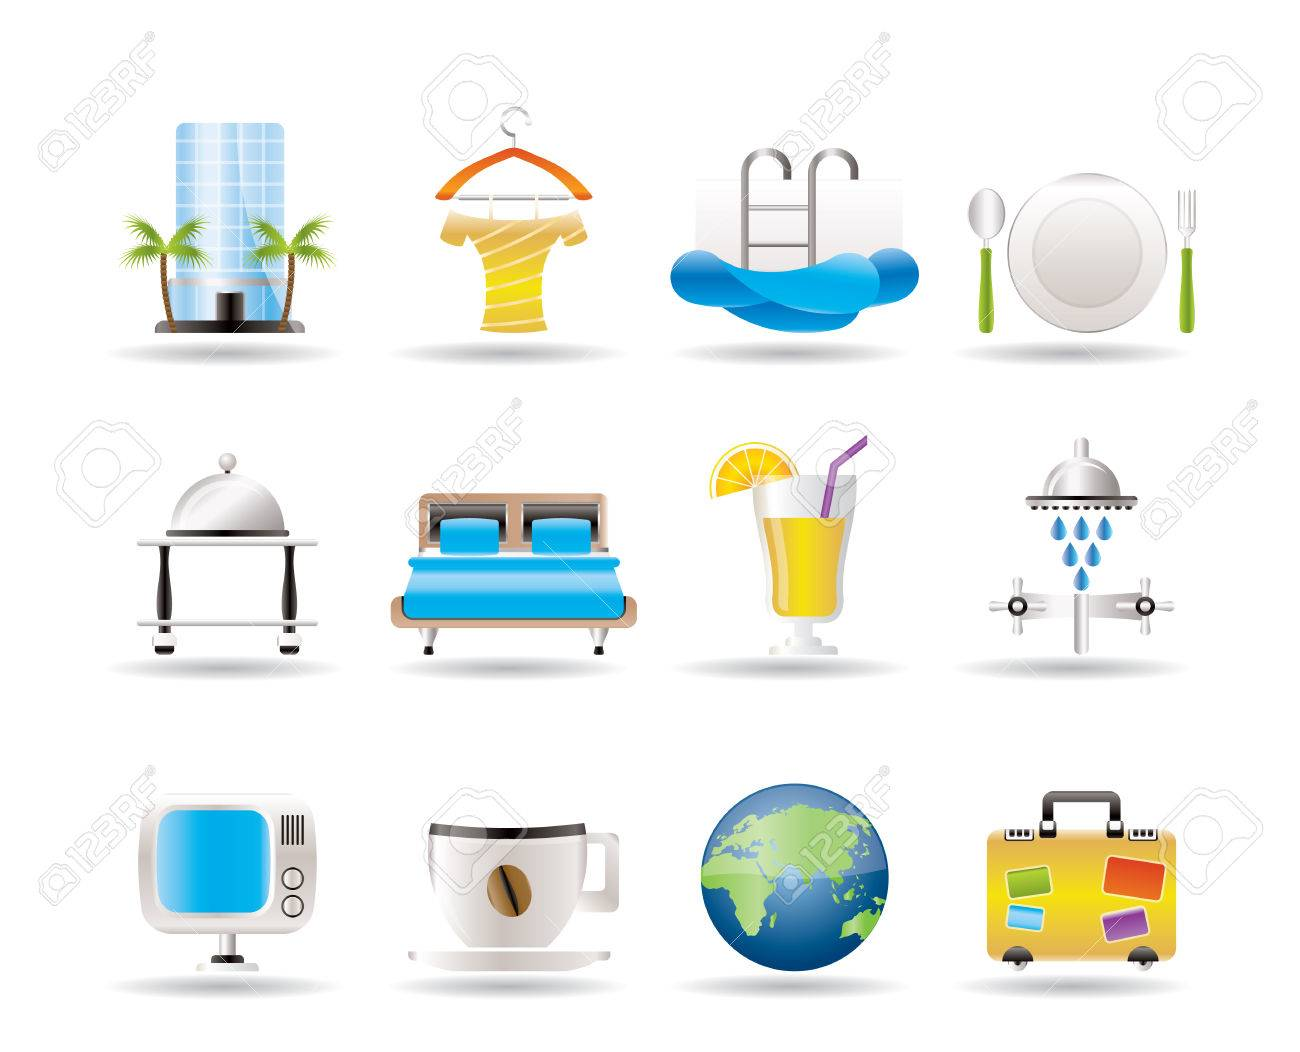 Hotel, motel and holidays icons - vector icon set Stock Vector - 7593949